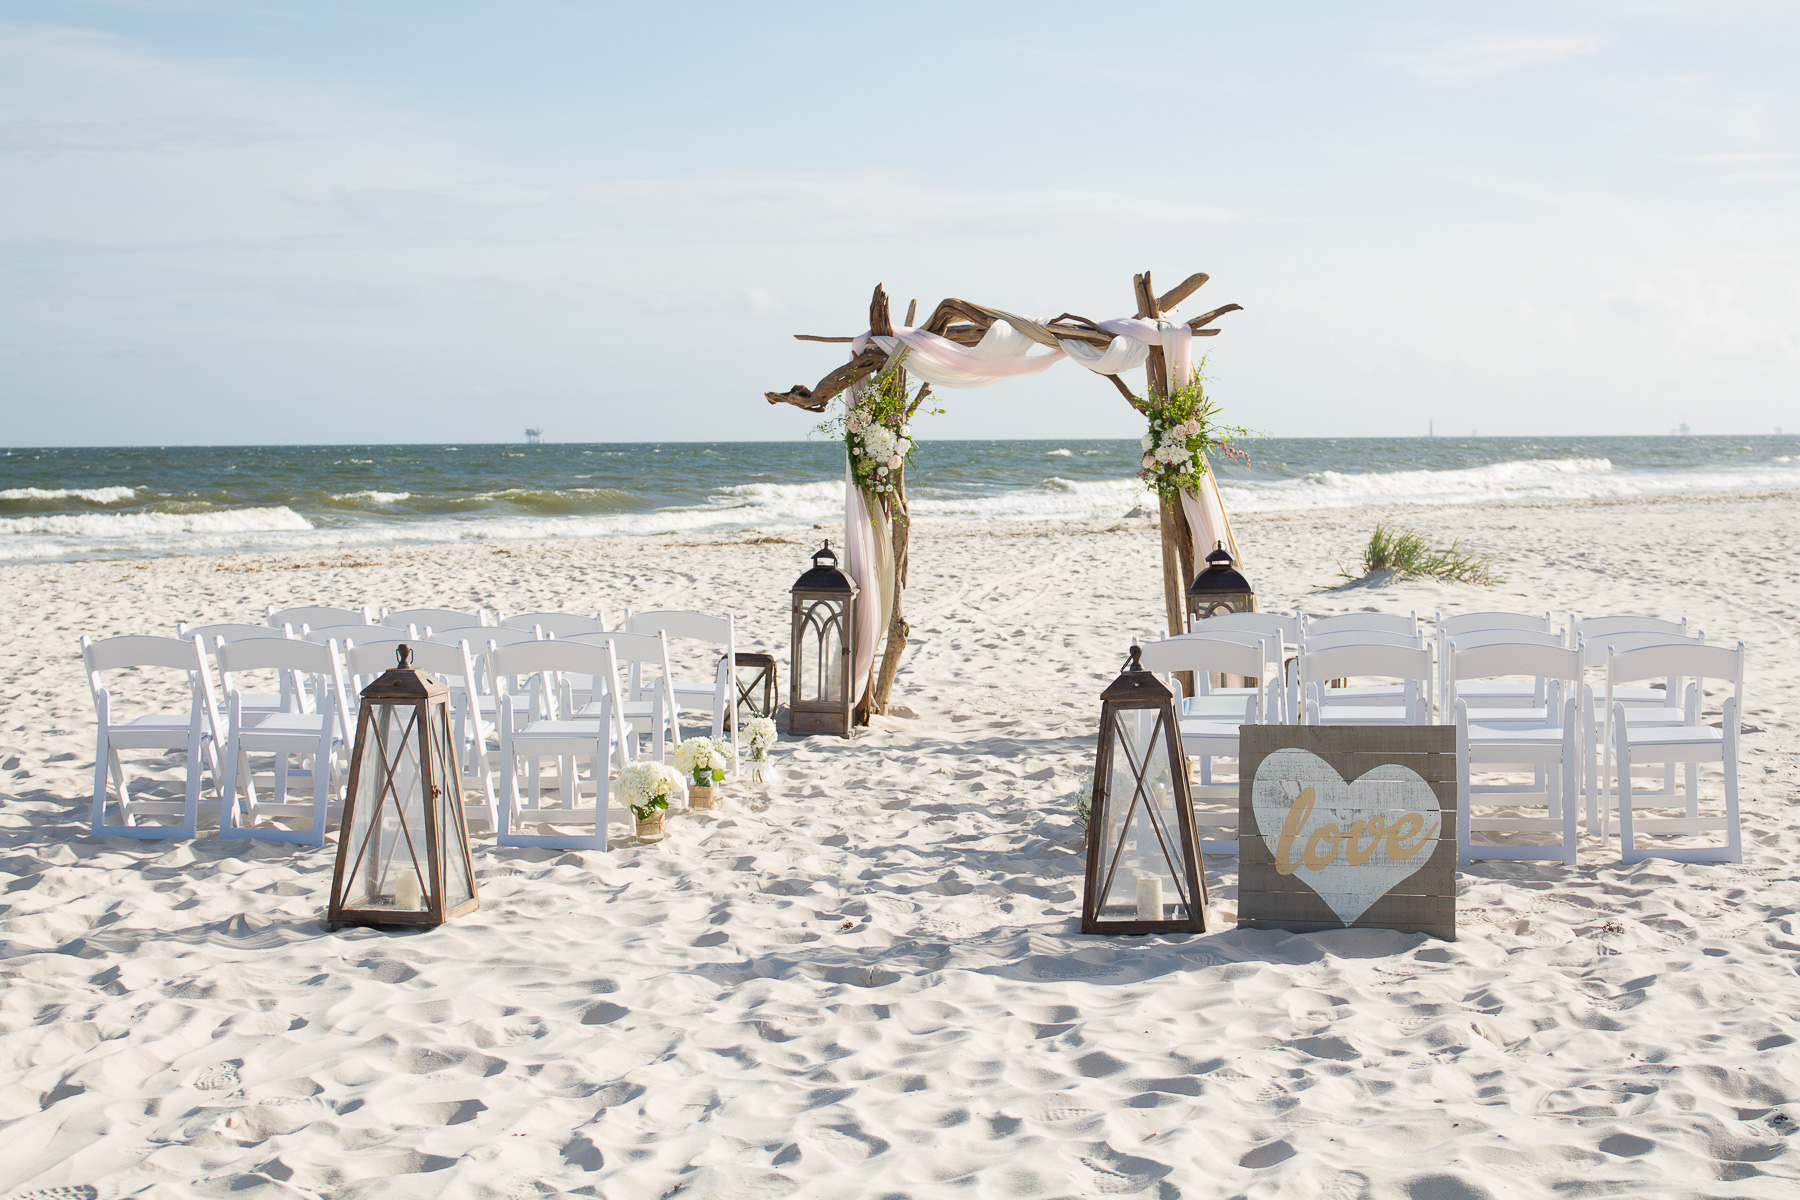 beachweddings-gulfshores-1-of-1-29